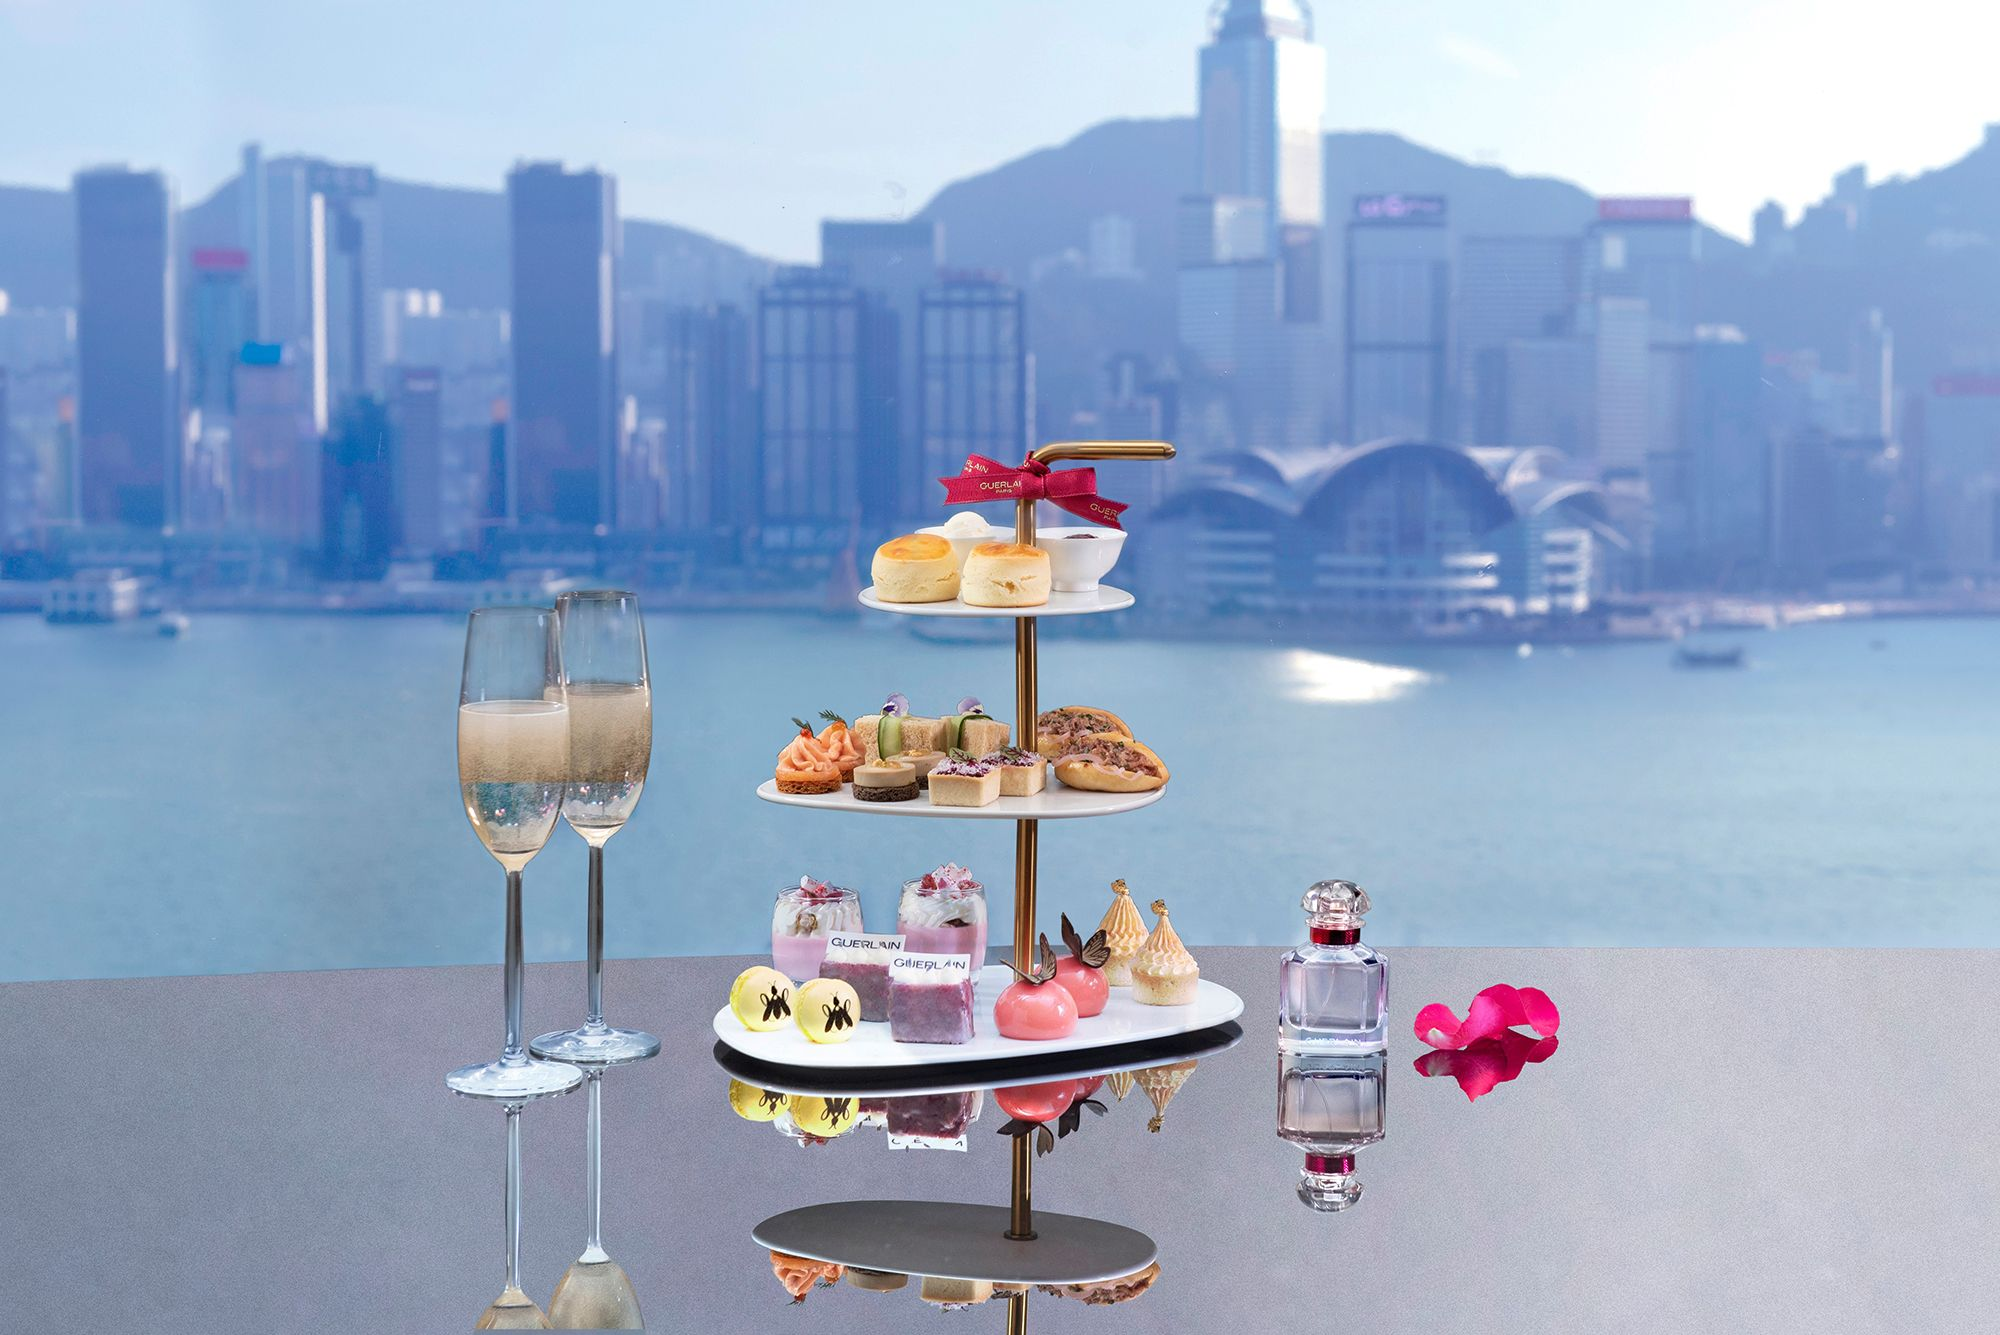 Guerlain Champagne Afternoon Tea At Sky Lounge